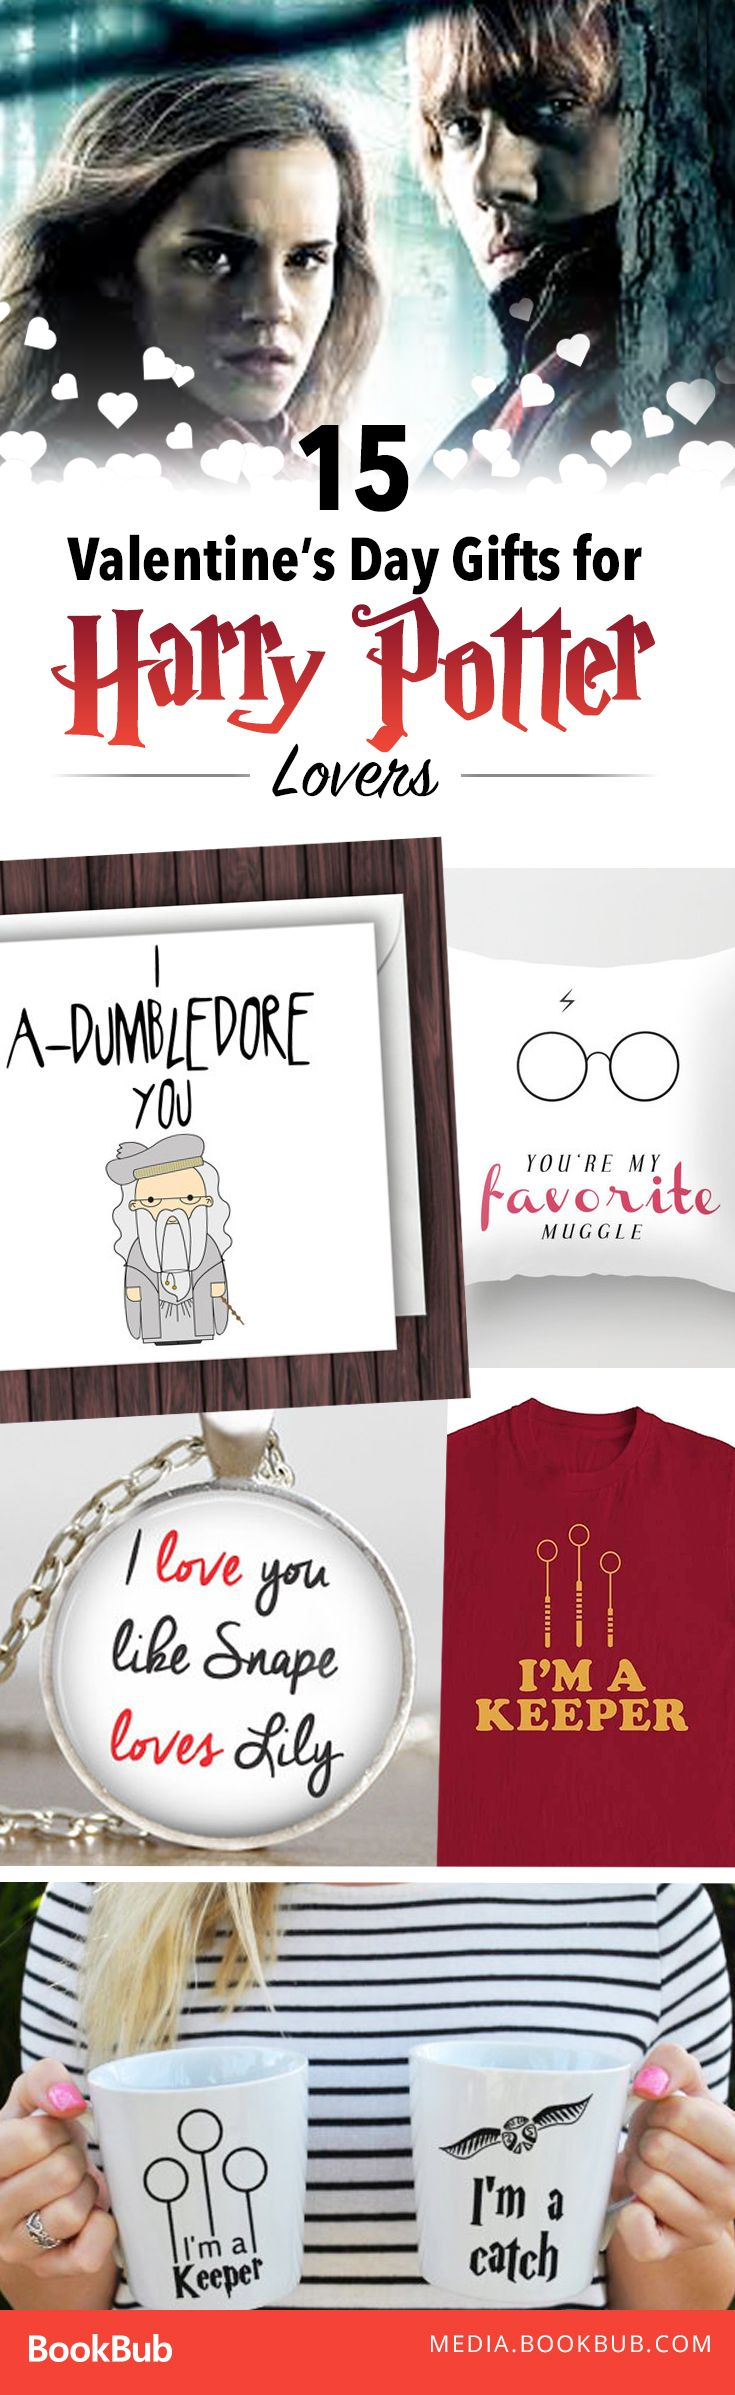 15 valentines day gifts for harry potter lovers harry